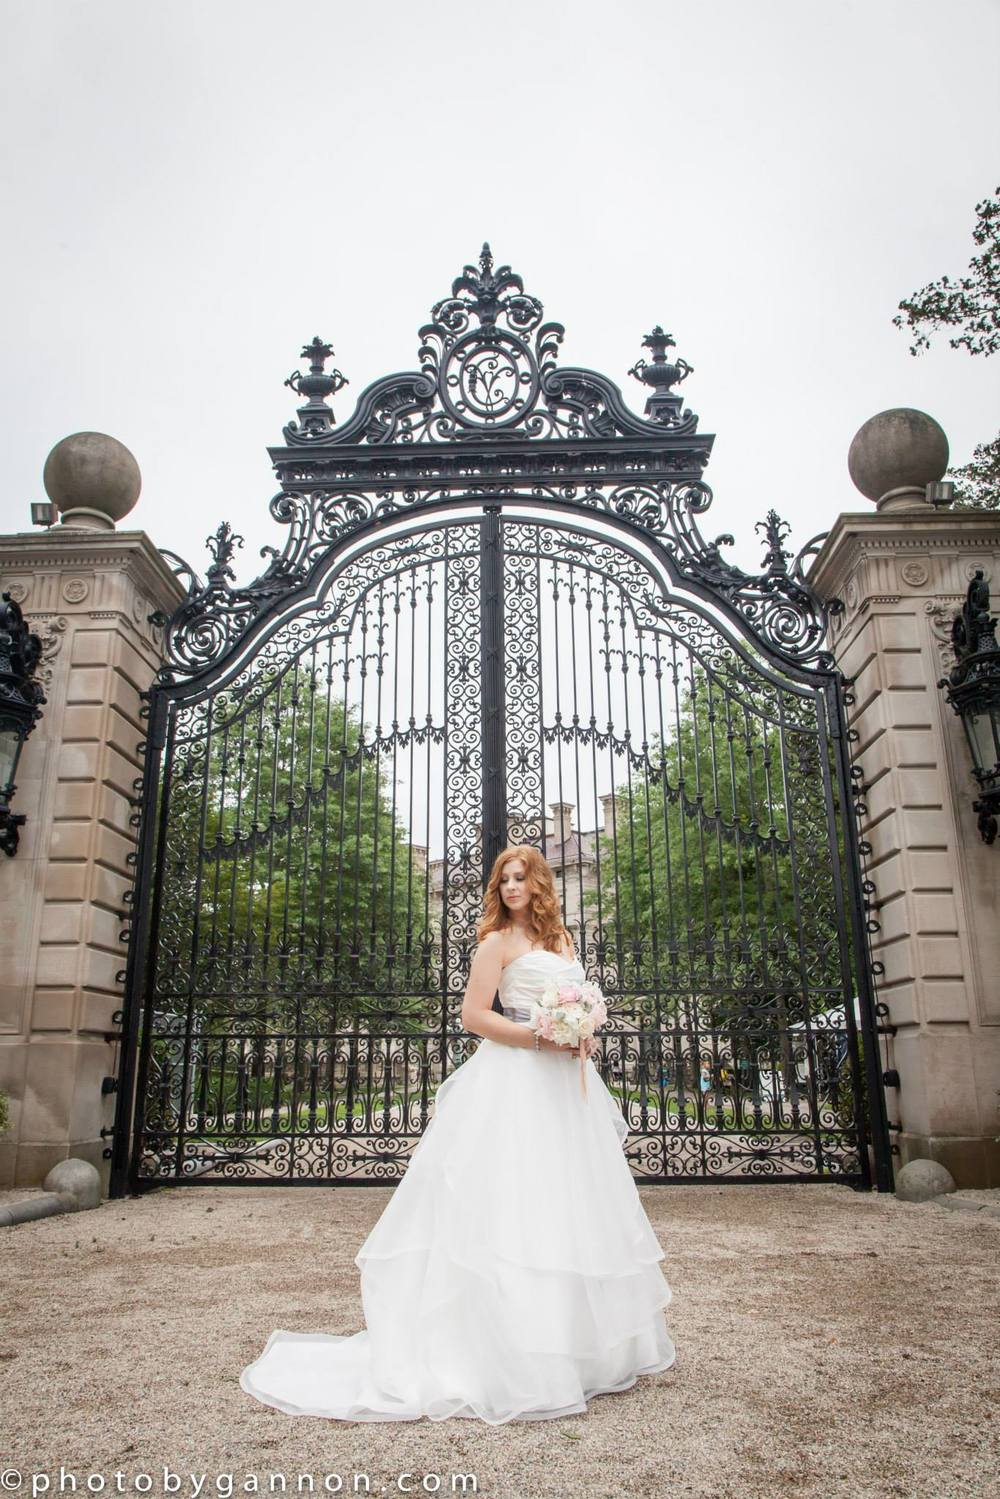 Jennifer + Tim  on June 28, 2015 ♥ Photo by Gannon at The Chanler at Cliff Walk (Newport, RI)